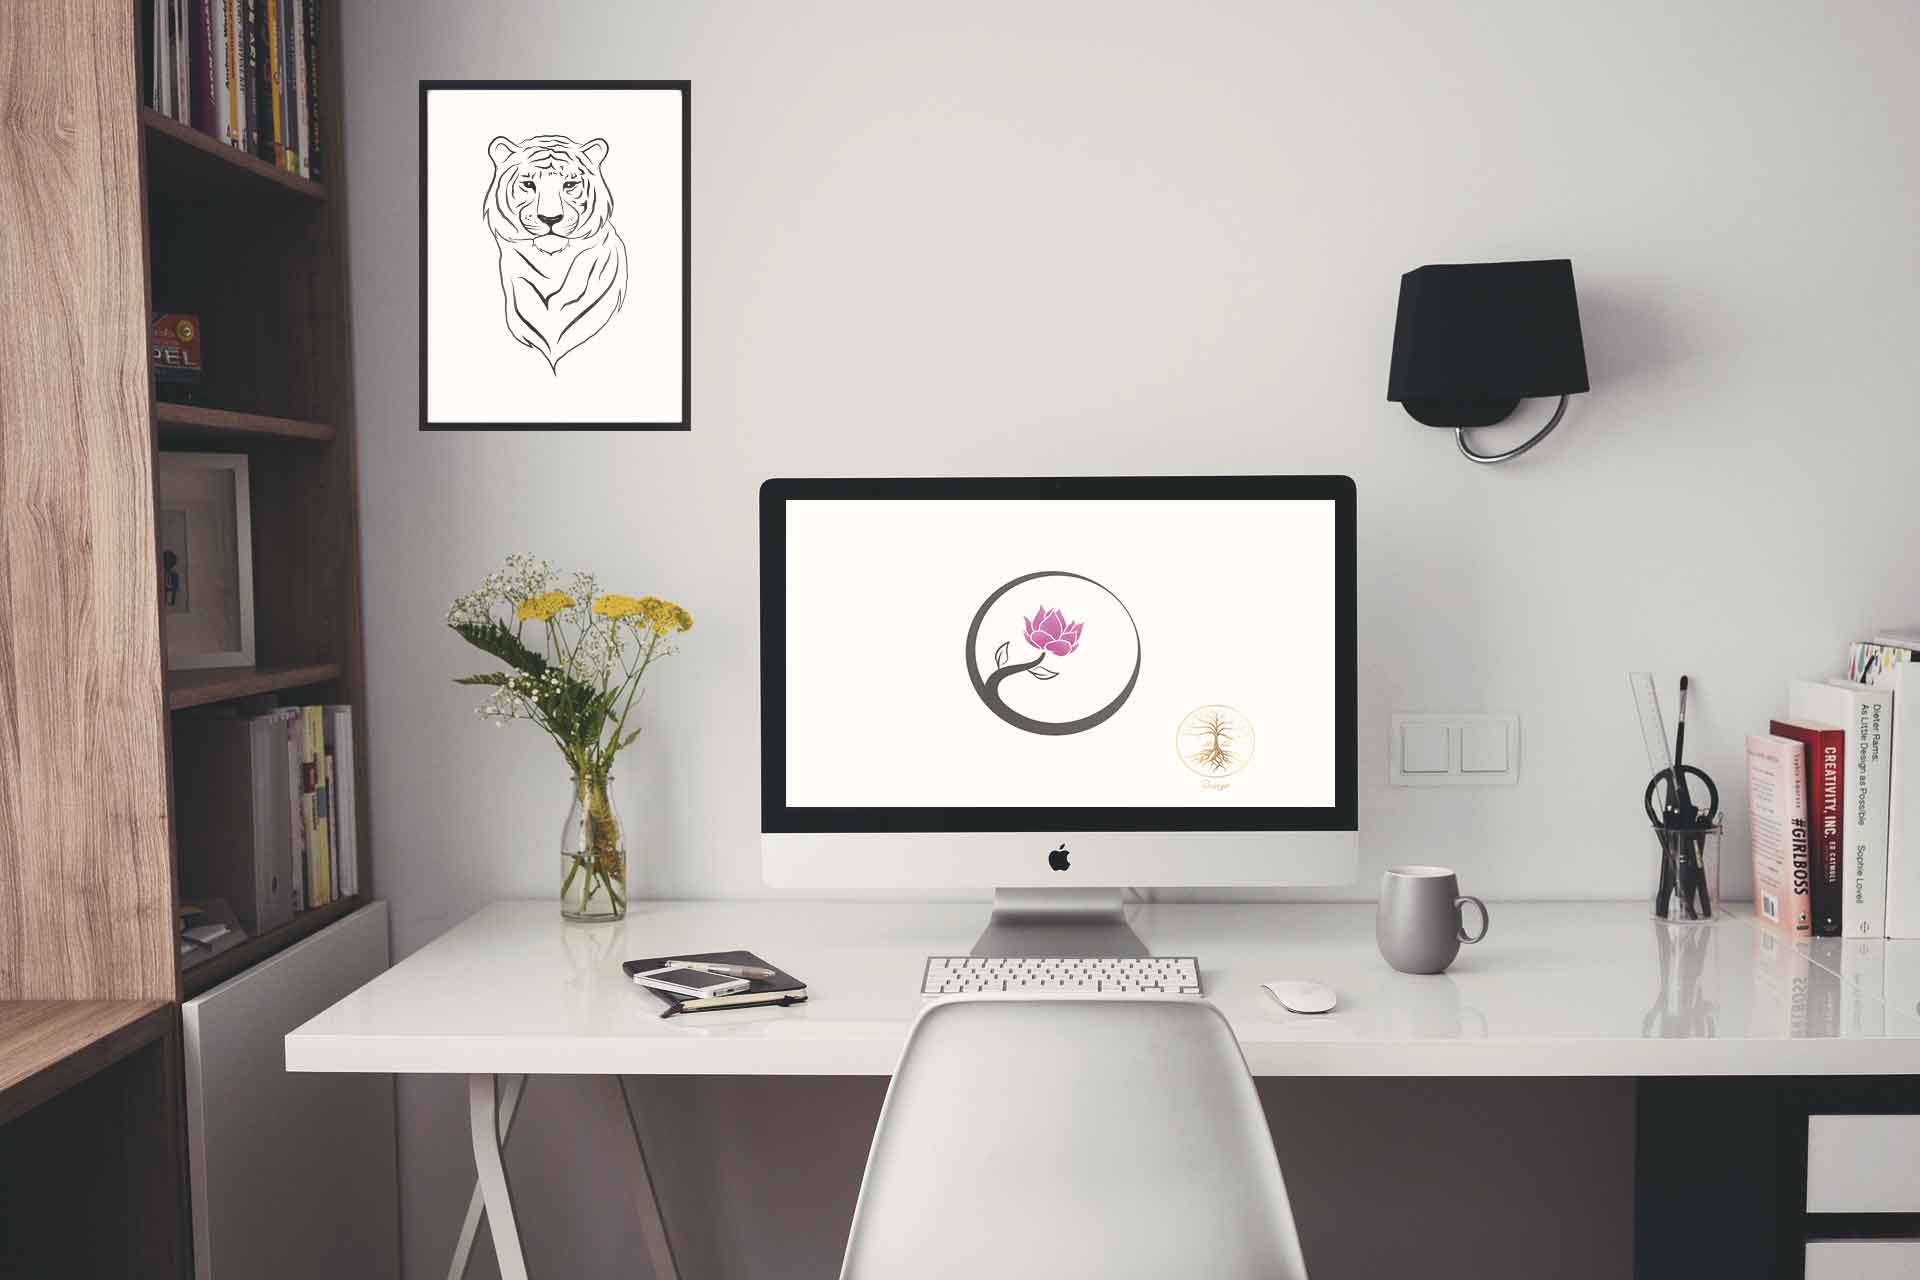 Image of a home office mockup featuring two of ABLG Design's logos including a tiger and a flower.